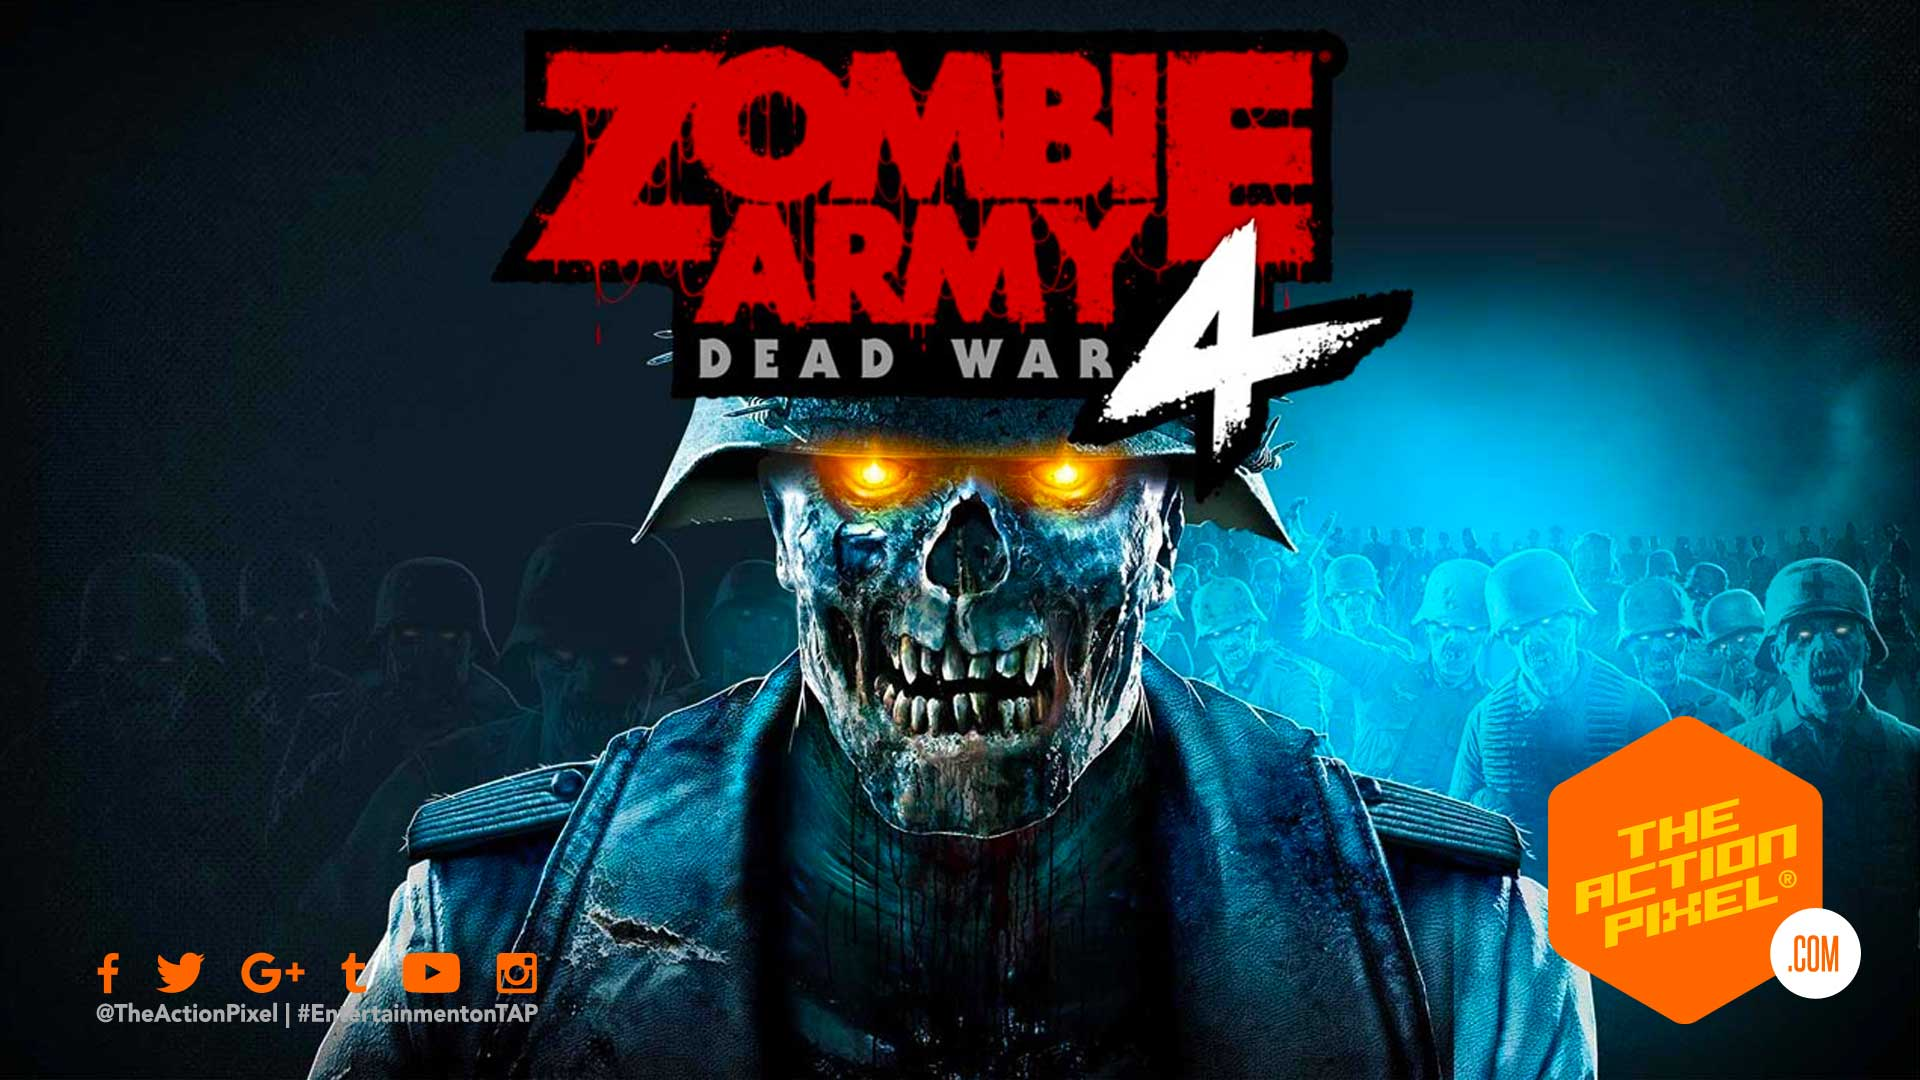 zombie army 4: dead war, dead war, rebellion, sniper elite, zombie army, the action pixel, reveal trailer, entertainment on tap, trailer, nazi zombies, zombies, zombie